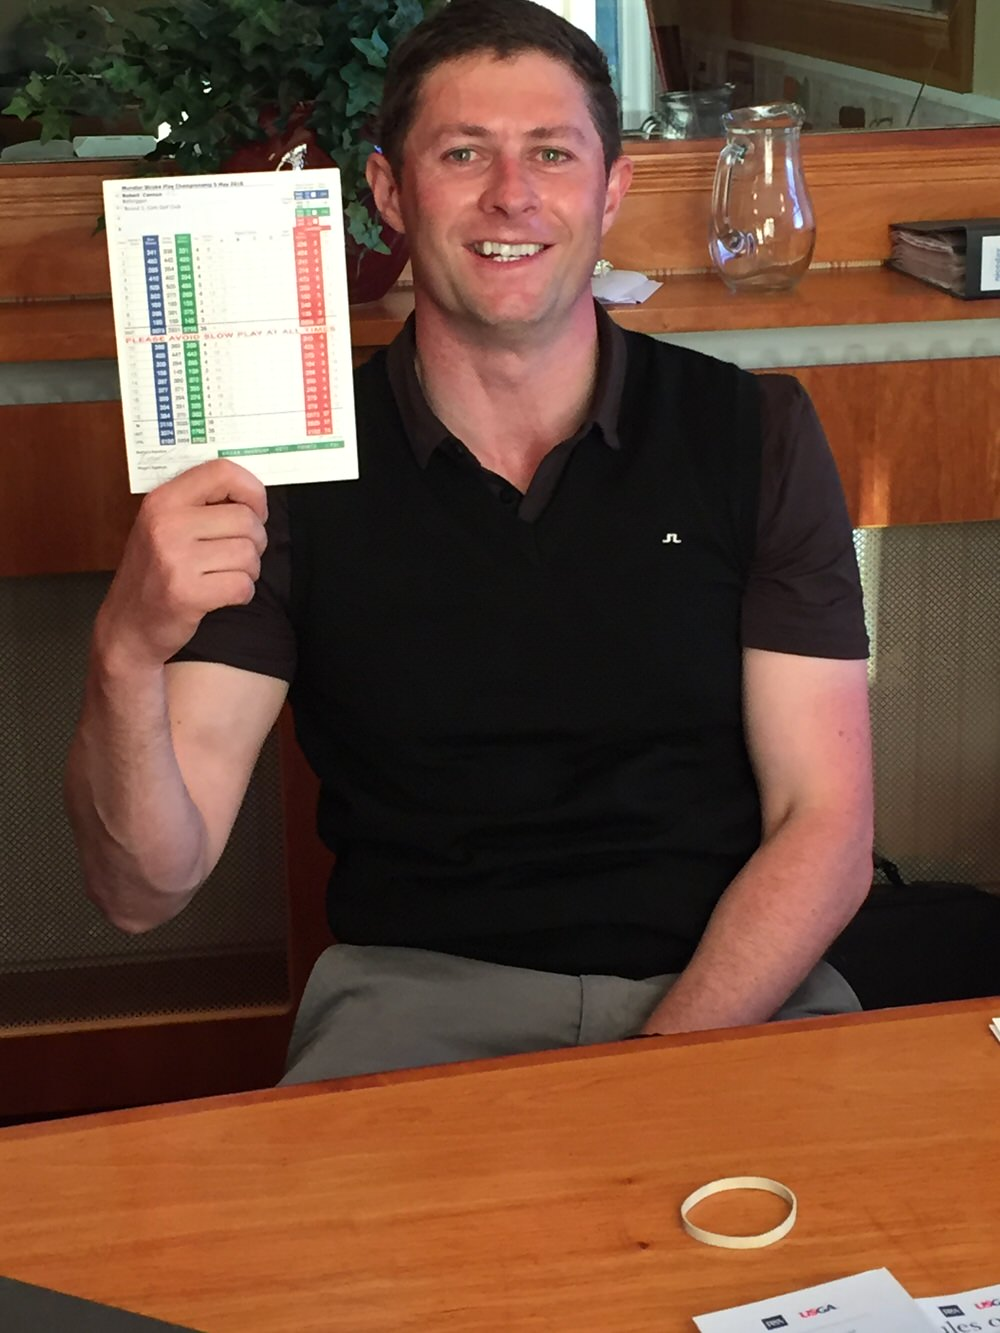 Robbie Cannon shows off his card - 64 blows around Cork Golf Club